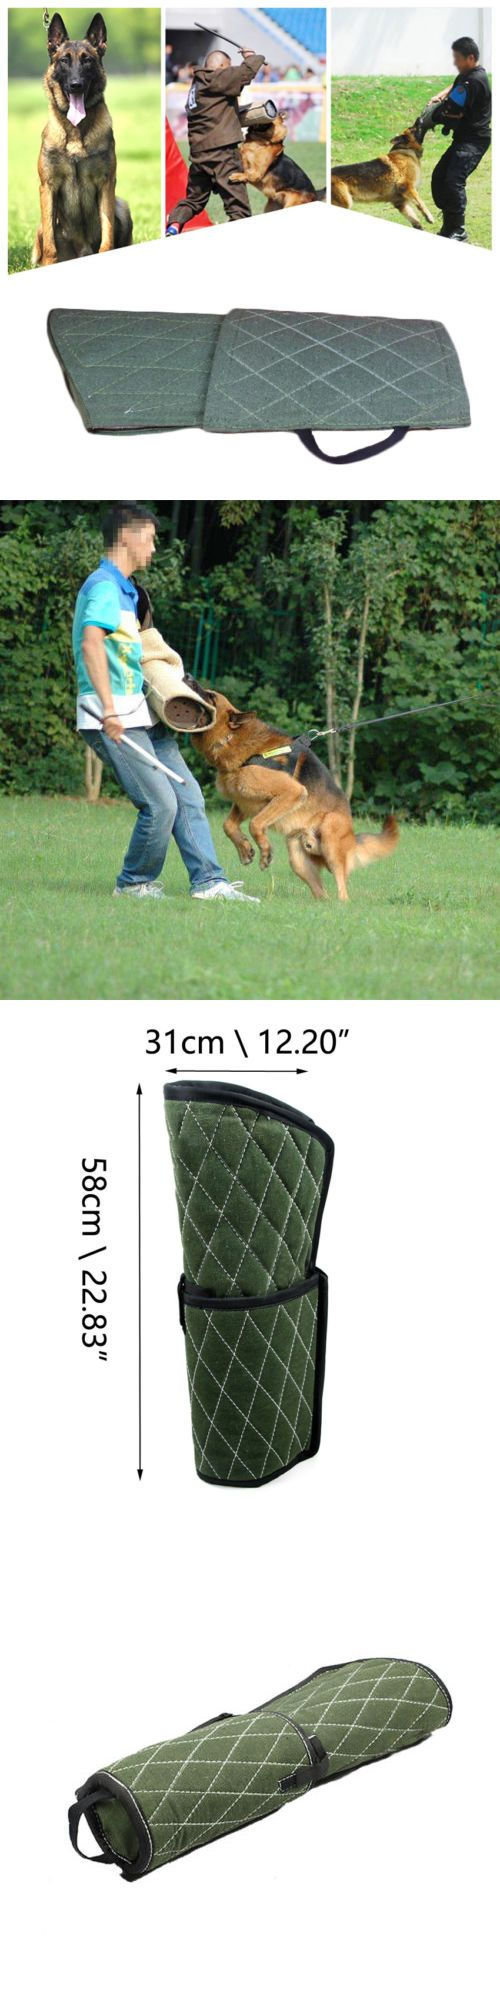 Bite Sleeves and Bite Suits 177795: Bite Sleeve Suits Protection Intermediate For Police Schutzhund Training Dogs -> BUY IT NOW ONLY: $54.86 on eBay!